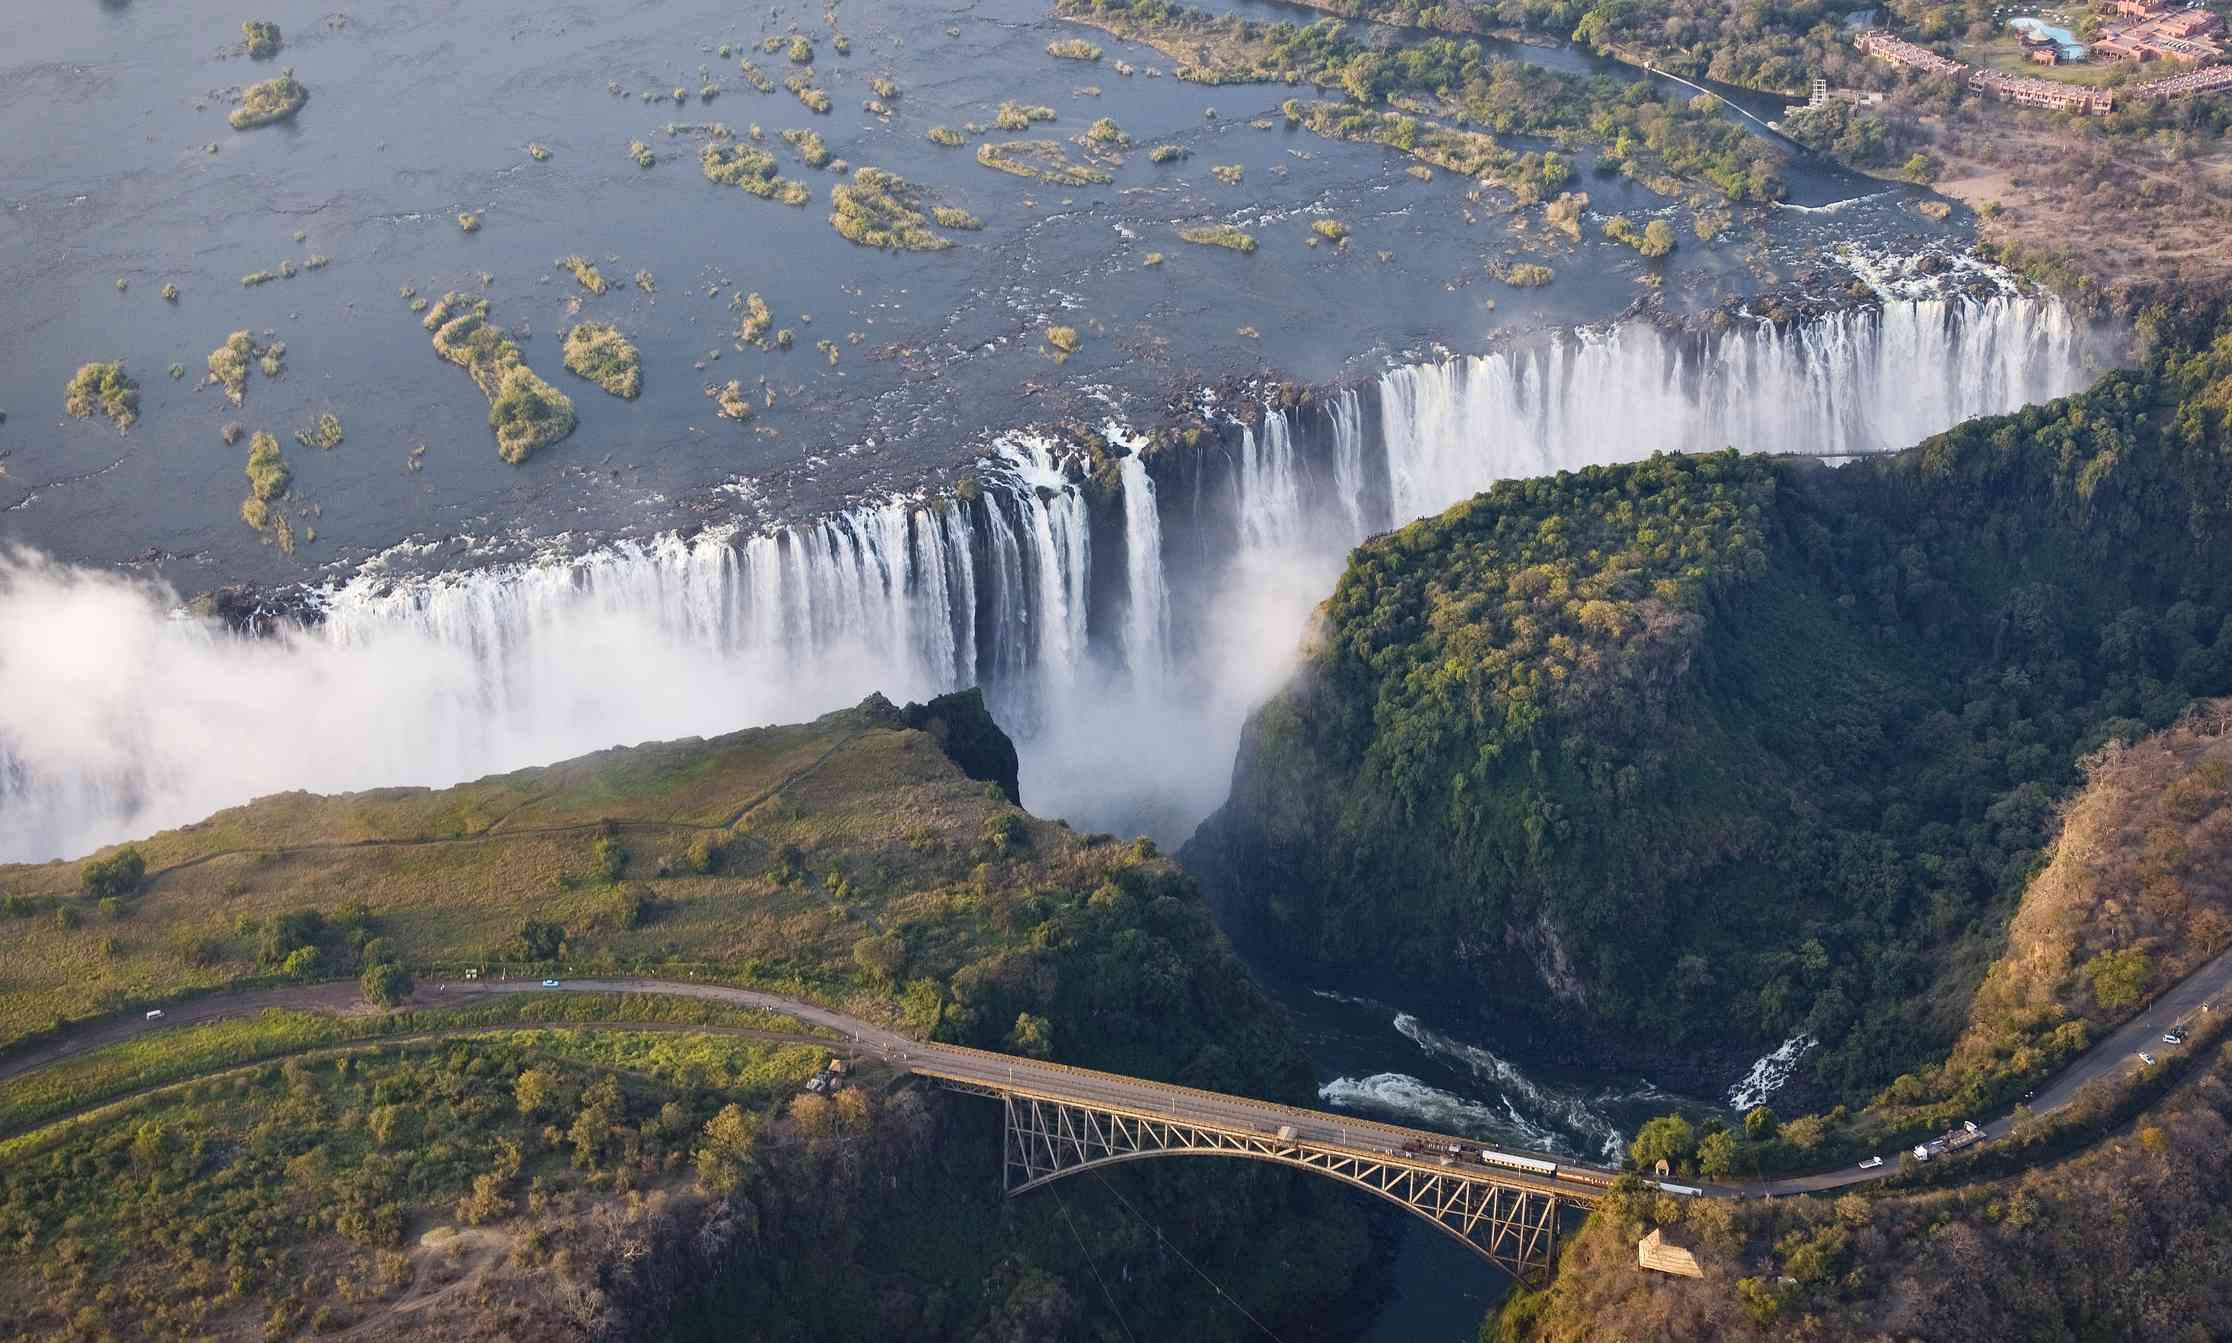 Aerial view of Victoria Falls on the border with Zimbabwe and Zambia